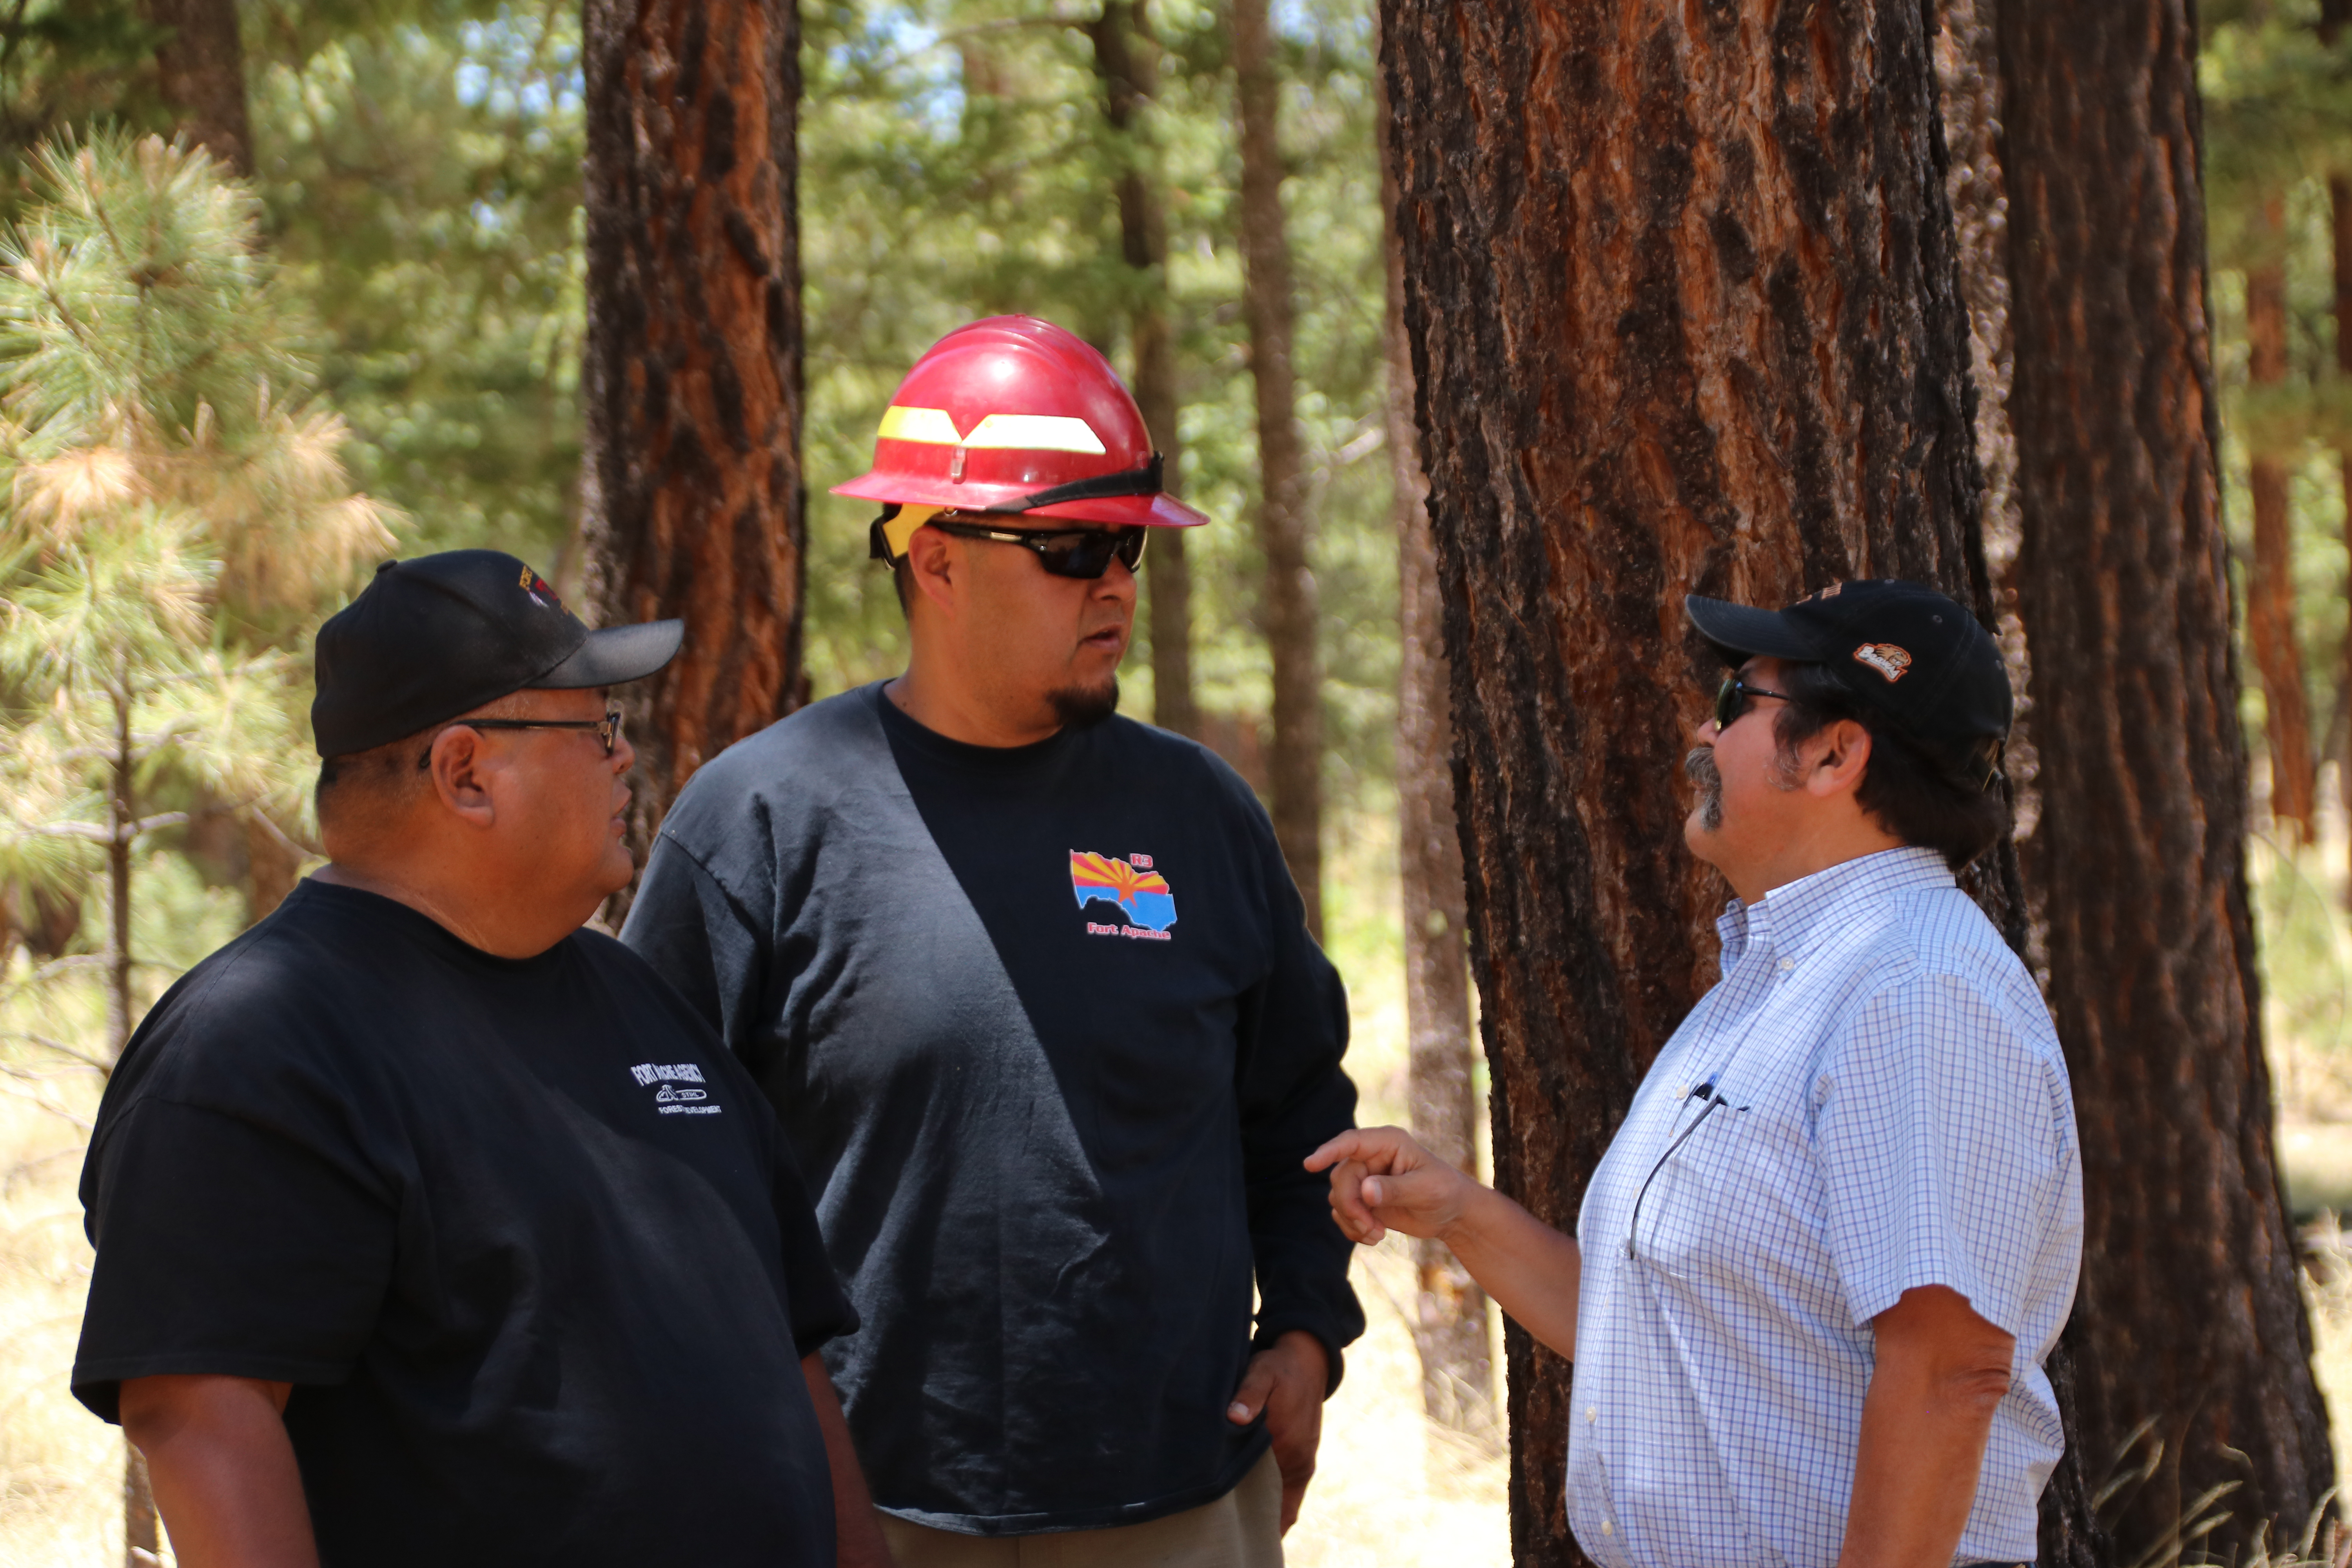 Apache forest management fights wildfires - Washington Times